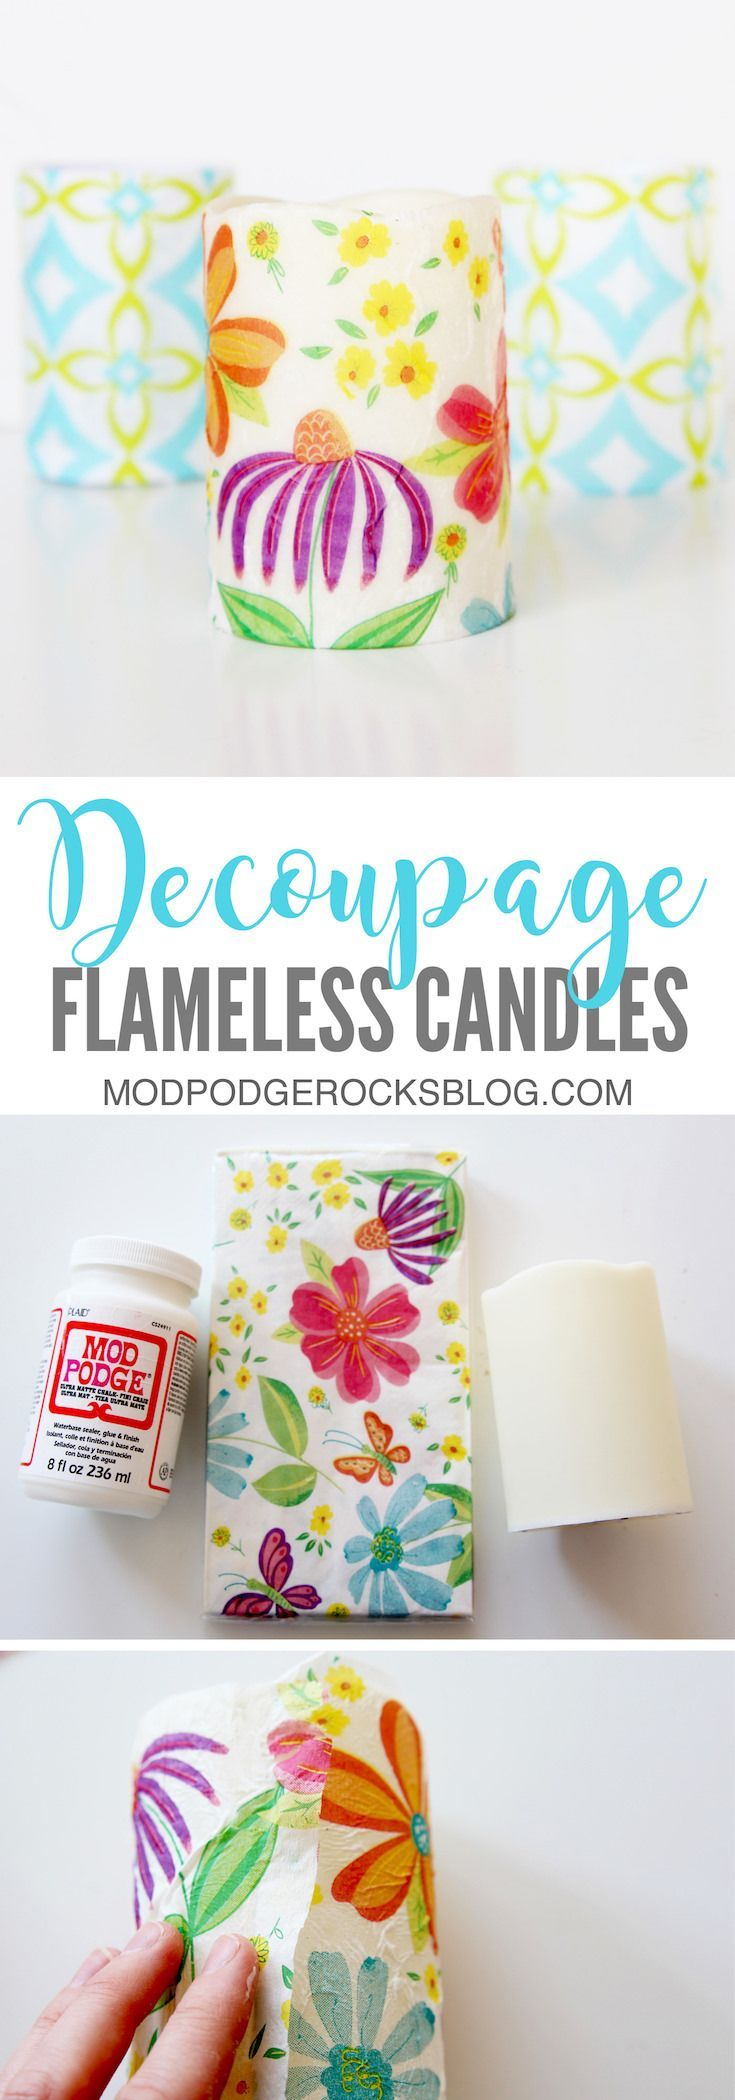 Make these easy decoupage candles with just a few materials from the dollar store, including Mod Podge and napkins. They can be customized for any occasion. via @modpodgerocks